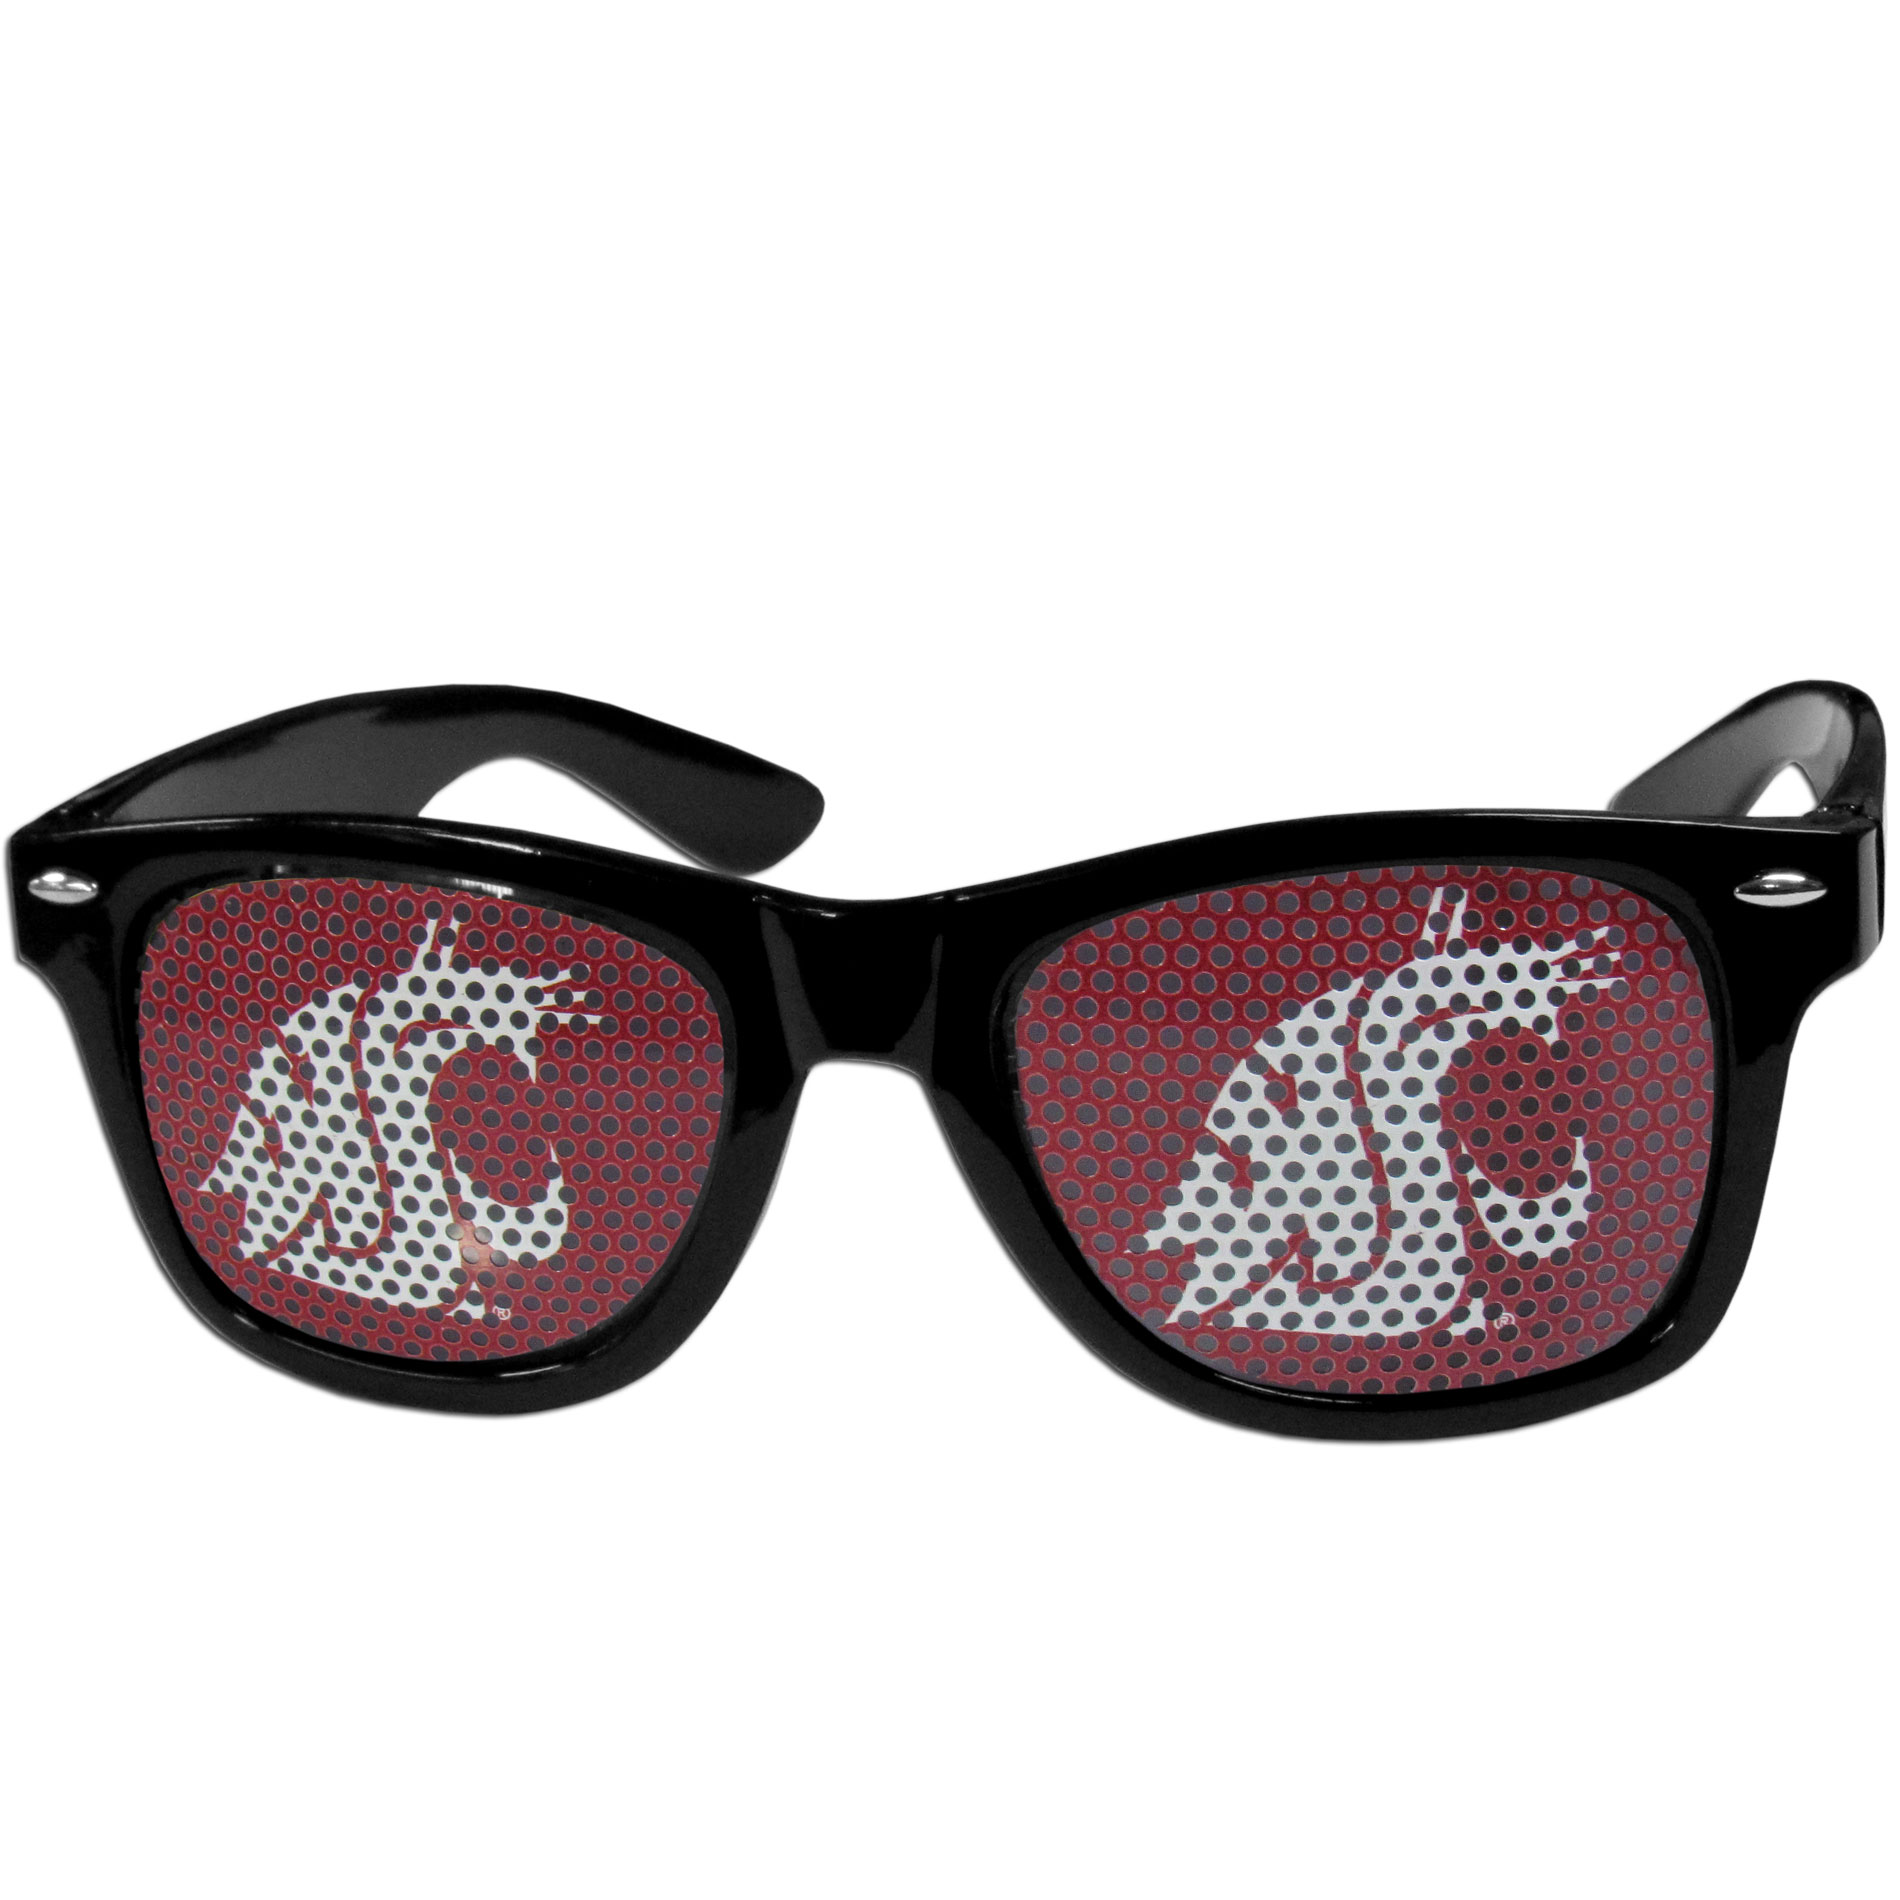 Washington St. Cougars Game Day Shades - Our officially licensed game day shades are the perfect accessory for the devoted Washington St. Cougars fan! The sunglasses have durable polycarbonate frames with flex hinges for comfort and damage resistance. The lenses feature brightly colored team clings that are perforated for visibility.